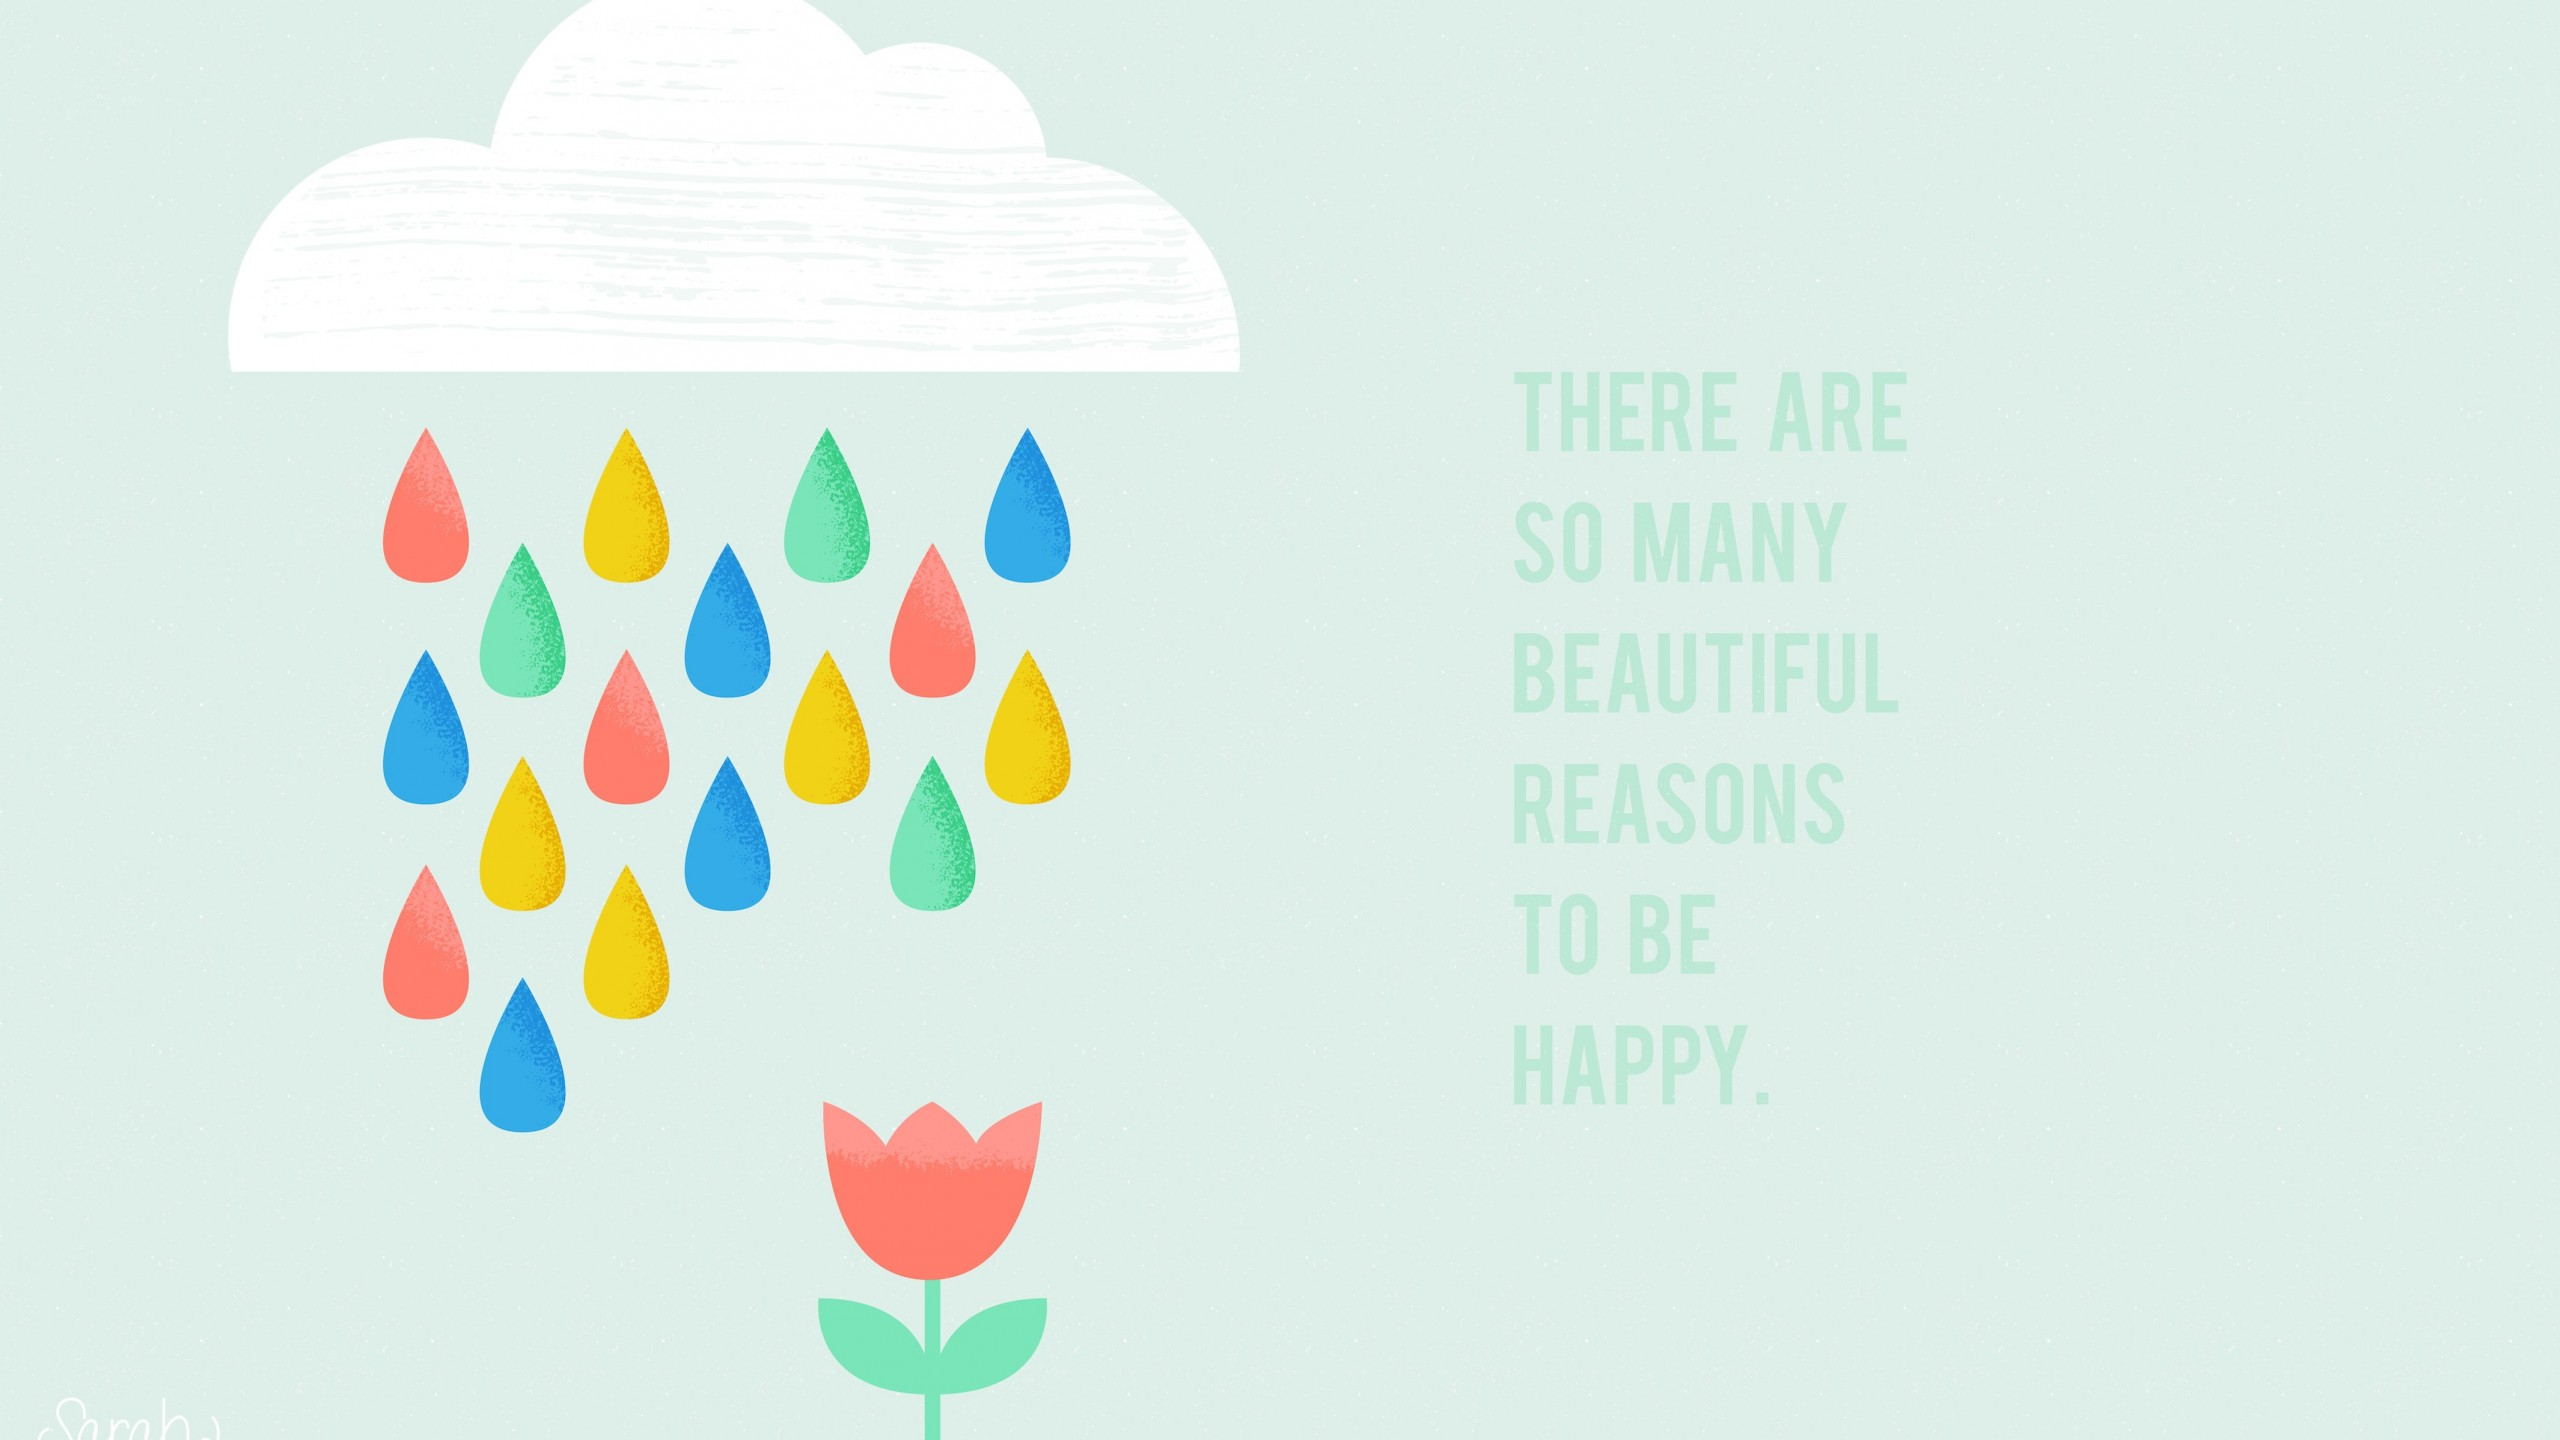 There are so many reasons to be happy Wallpaper for Social Media YouTube Channel Art